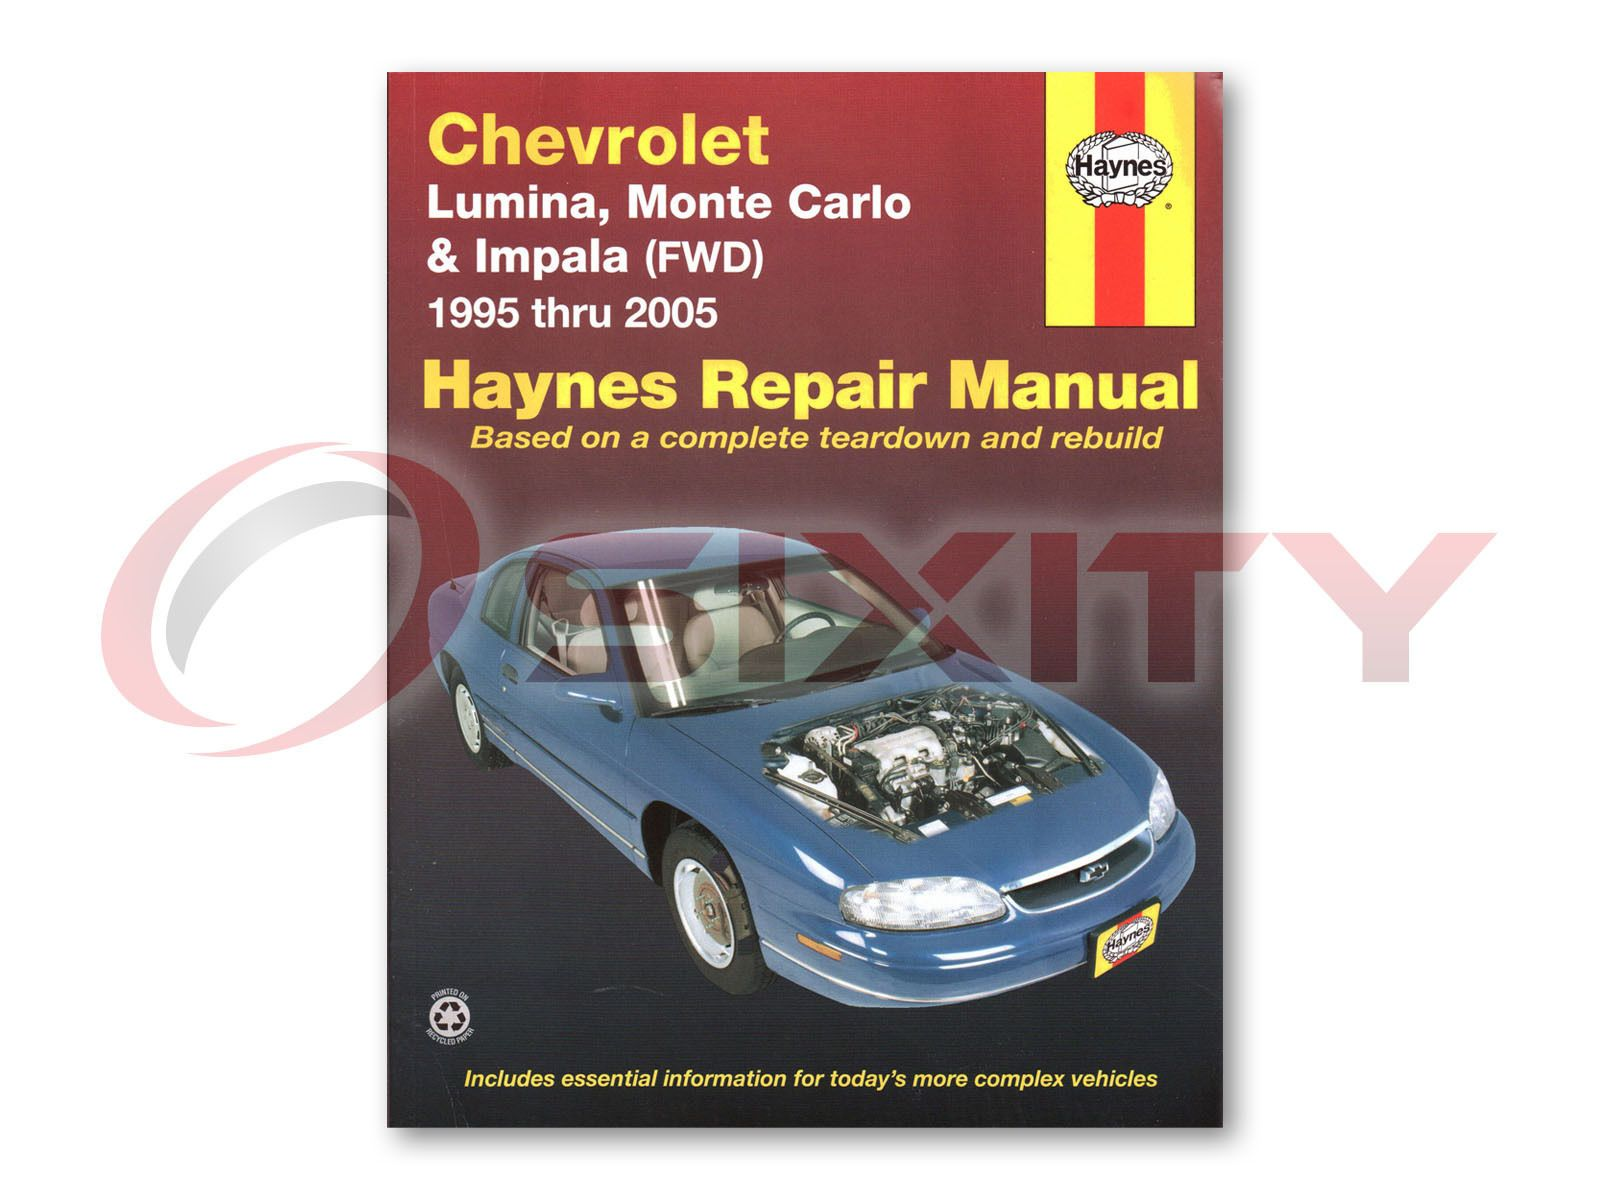 ManualsPRO - Chevy Impala Haynes Repair Manual LS Sport Base SS Shop Service  Garage Bookud https